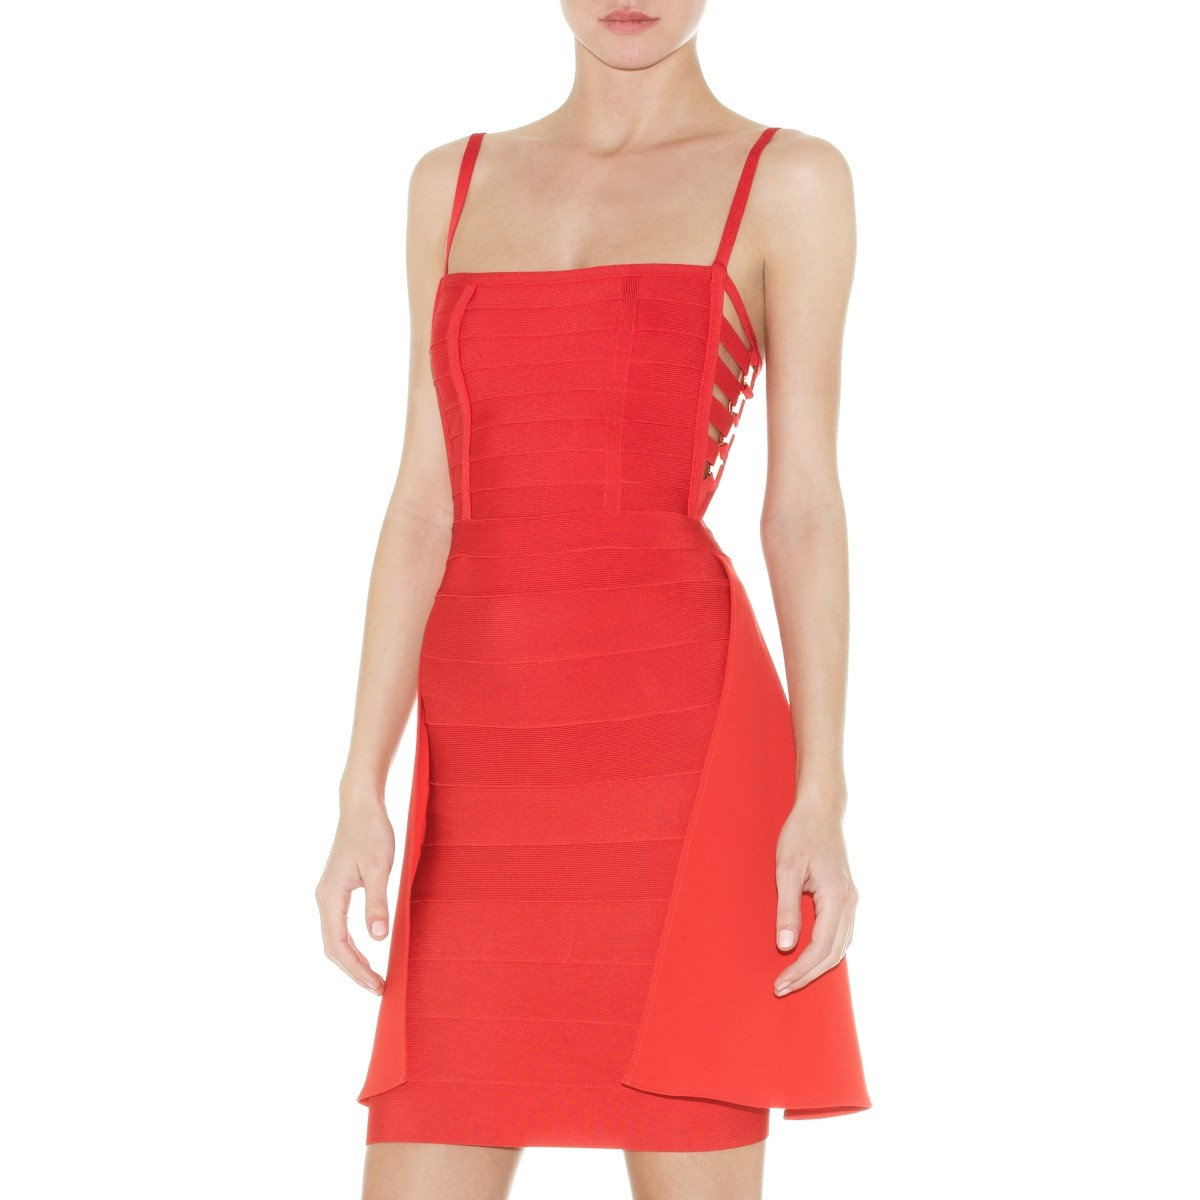 Herve Leger Clio Bandage Dress With Draped Detail